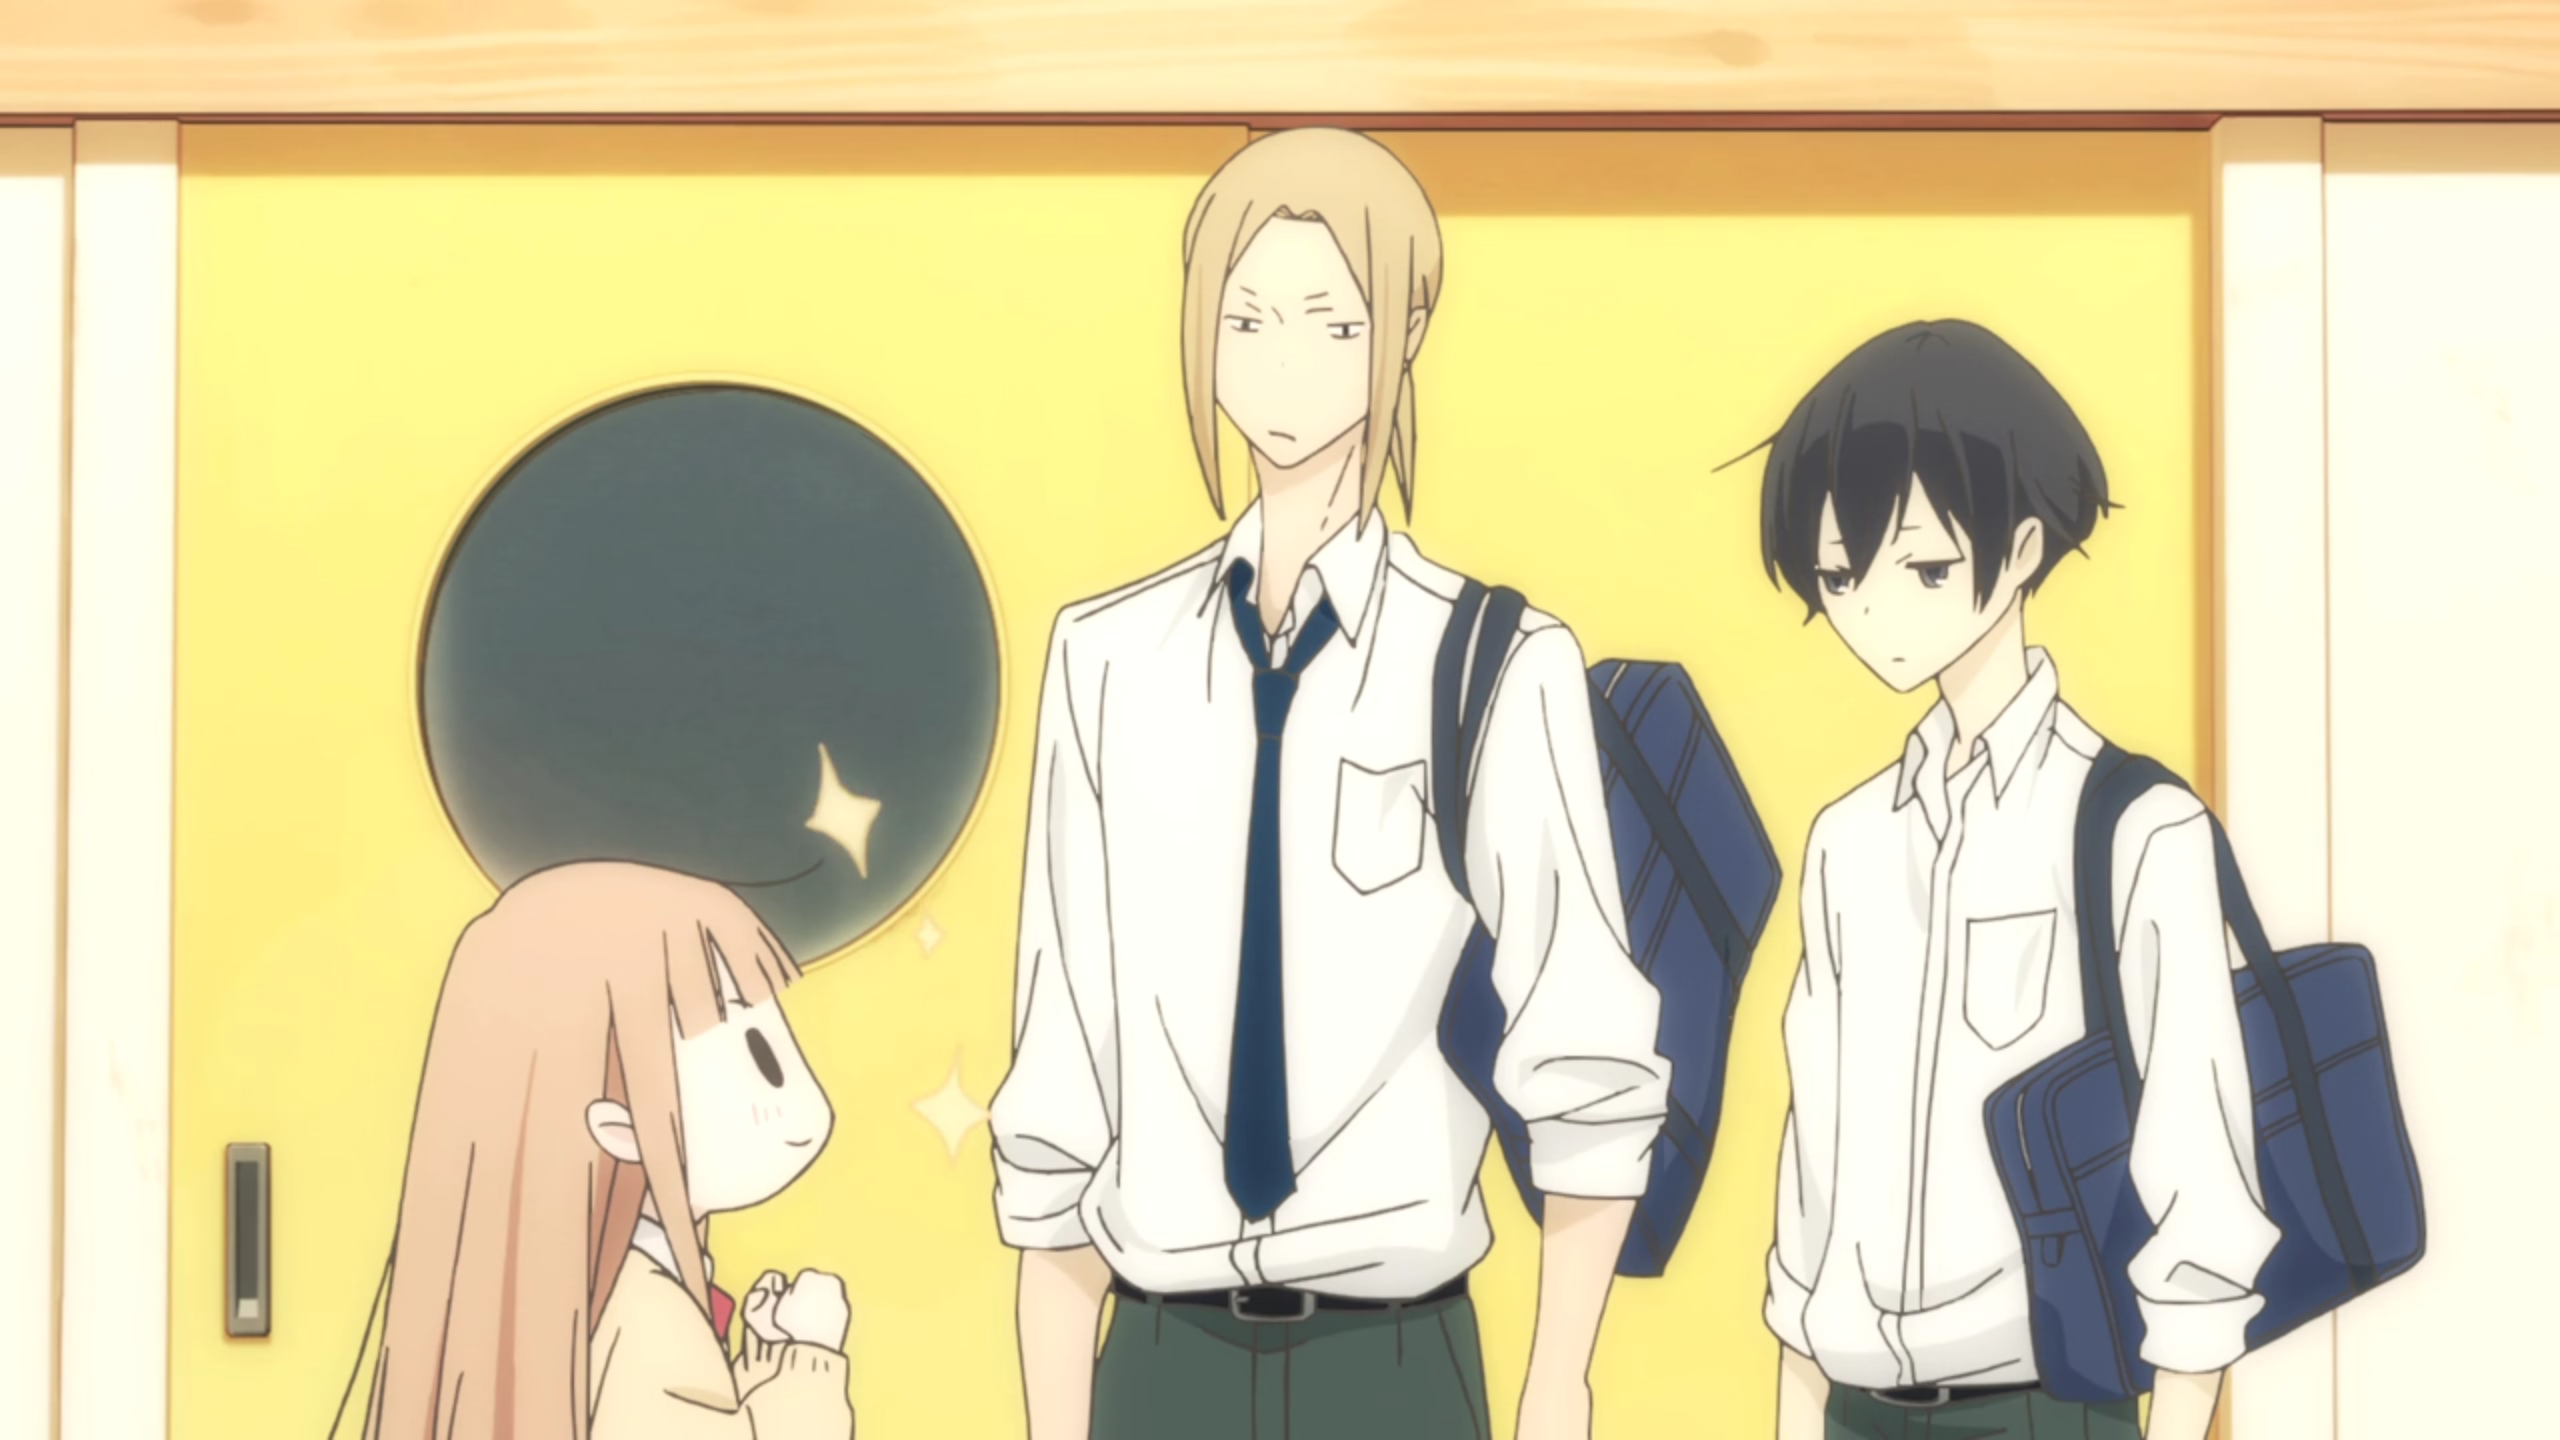 Short Girl Miyano Looks Up At Ota And Tanaka With A Determined Smile On Her Face